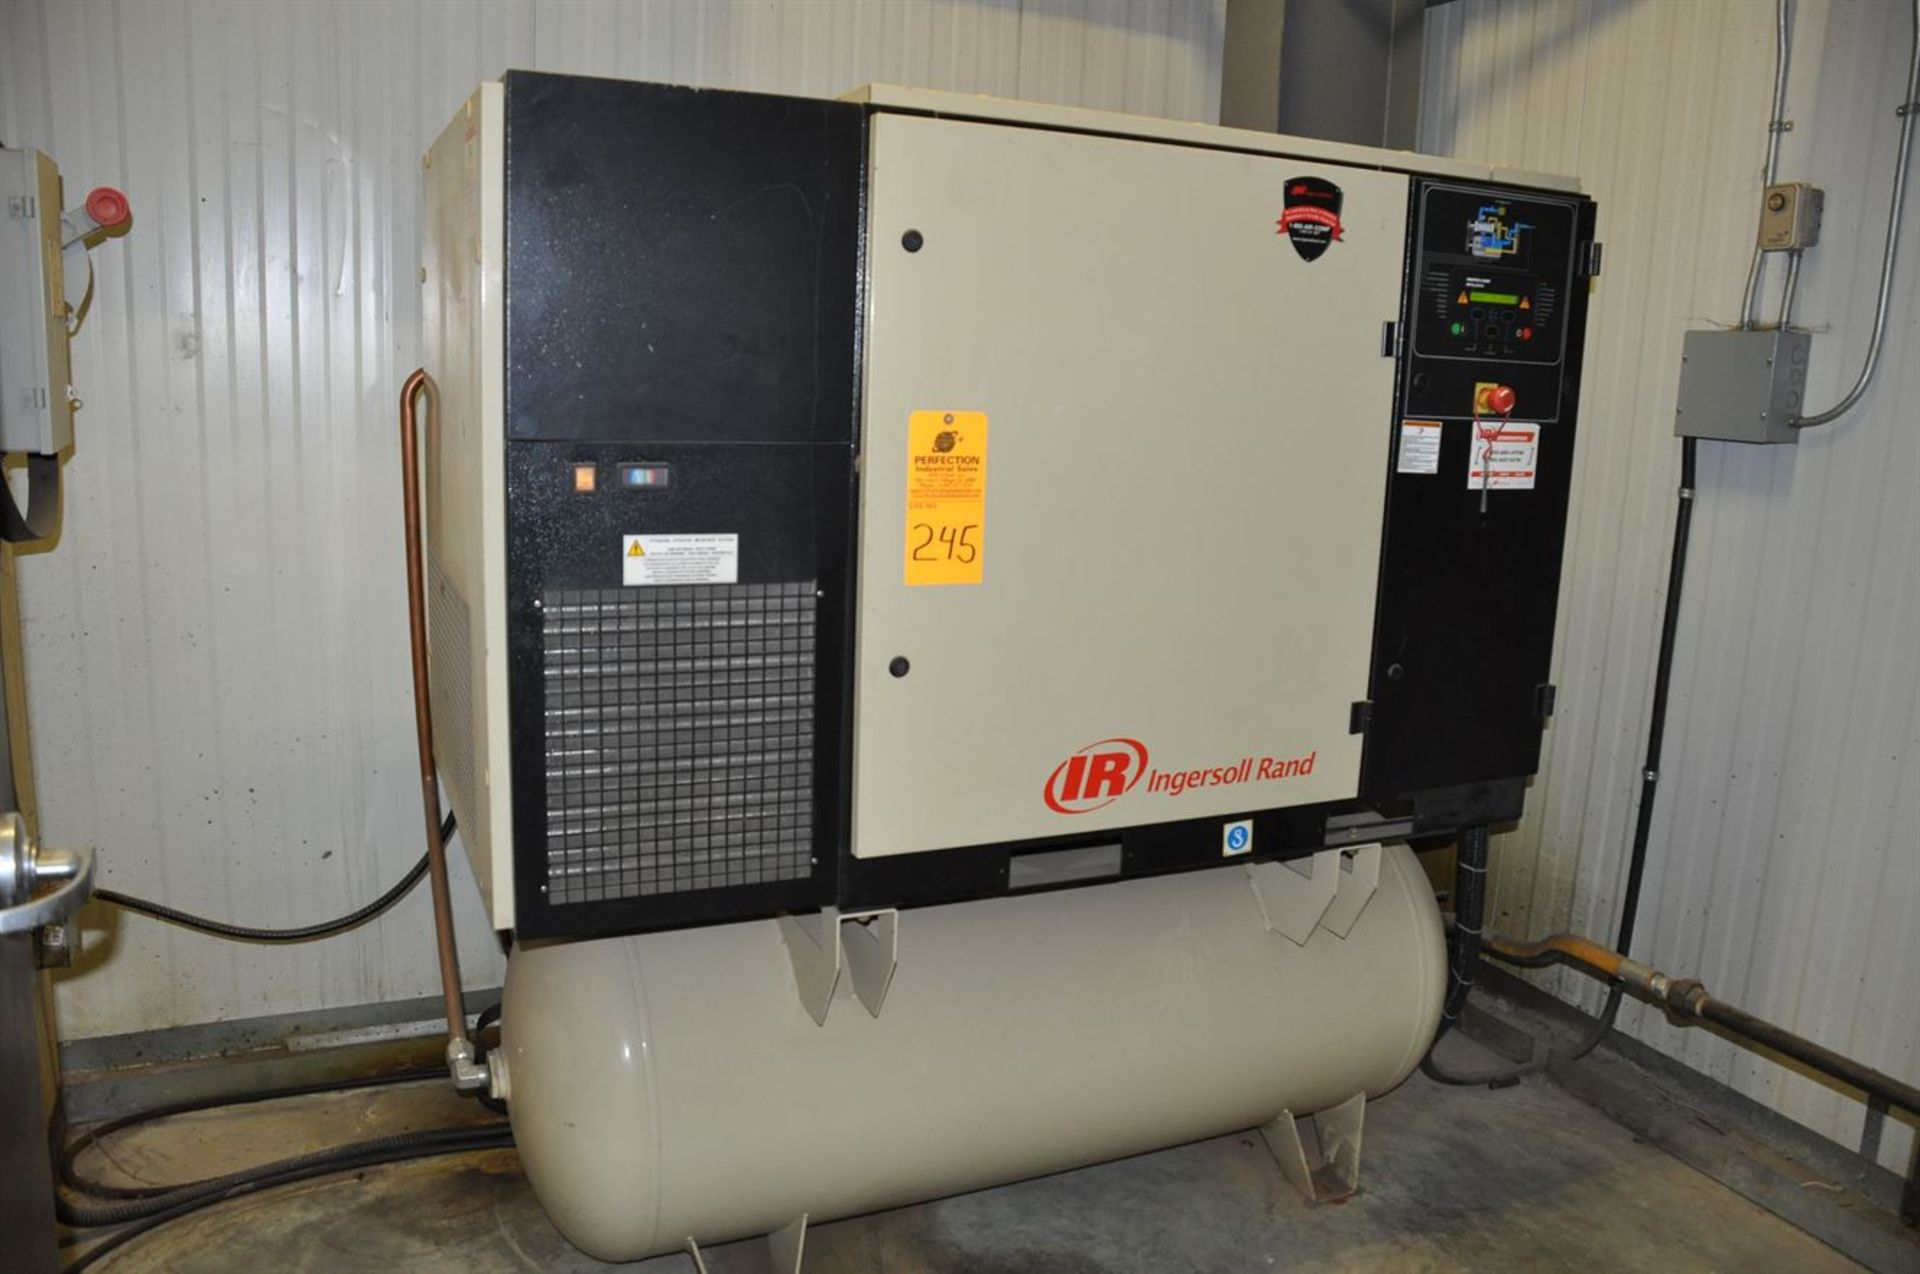 2012 INGERSOLL RAND UP6-30-150 30 hp Air Compressor System, s/n CBV185766, w/ Built-In Air Dryer,